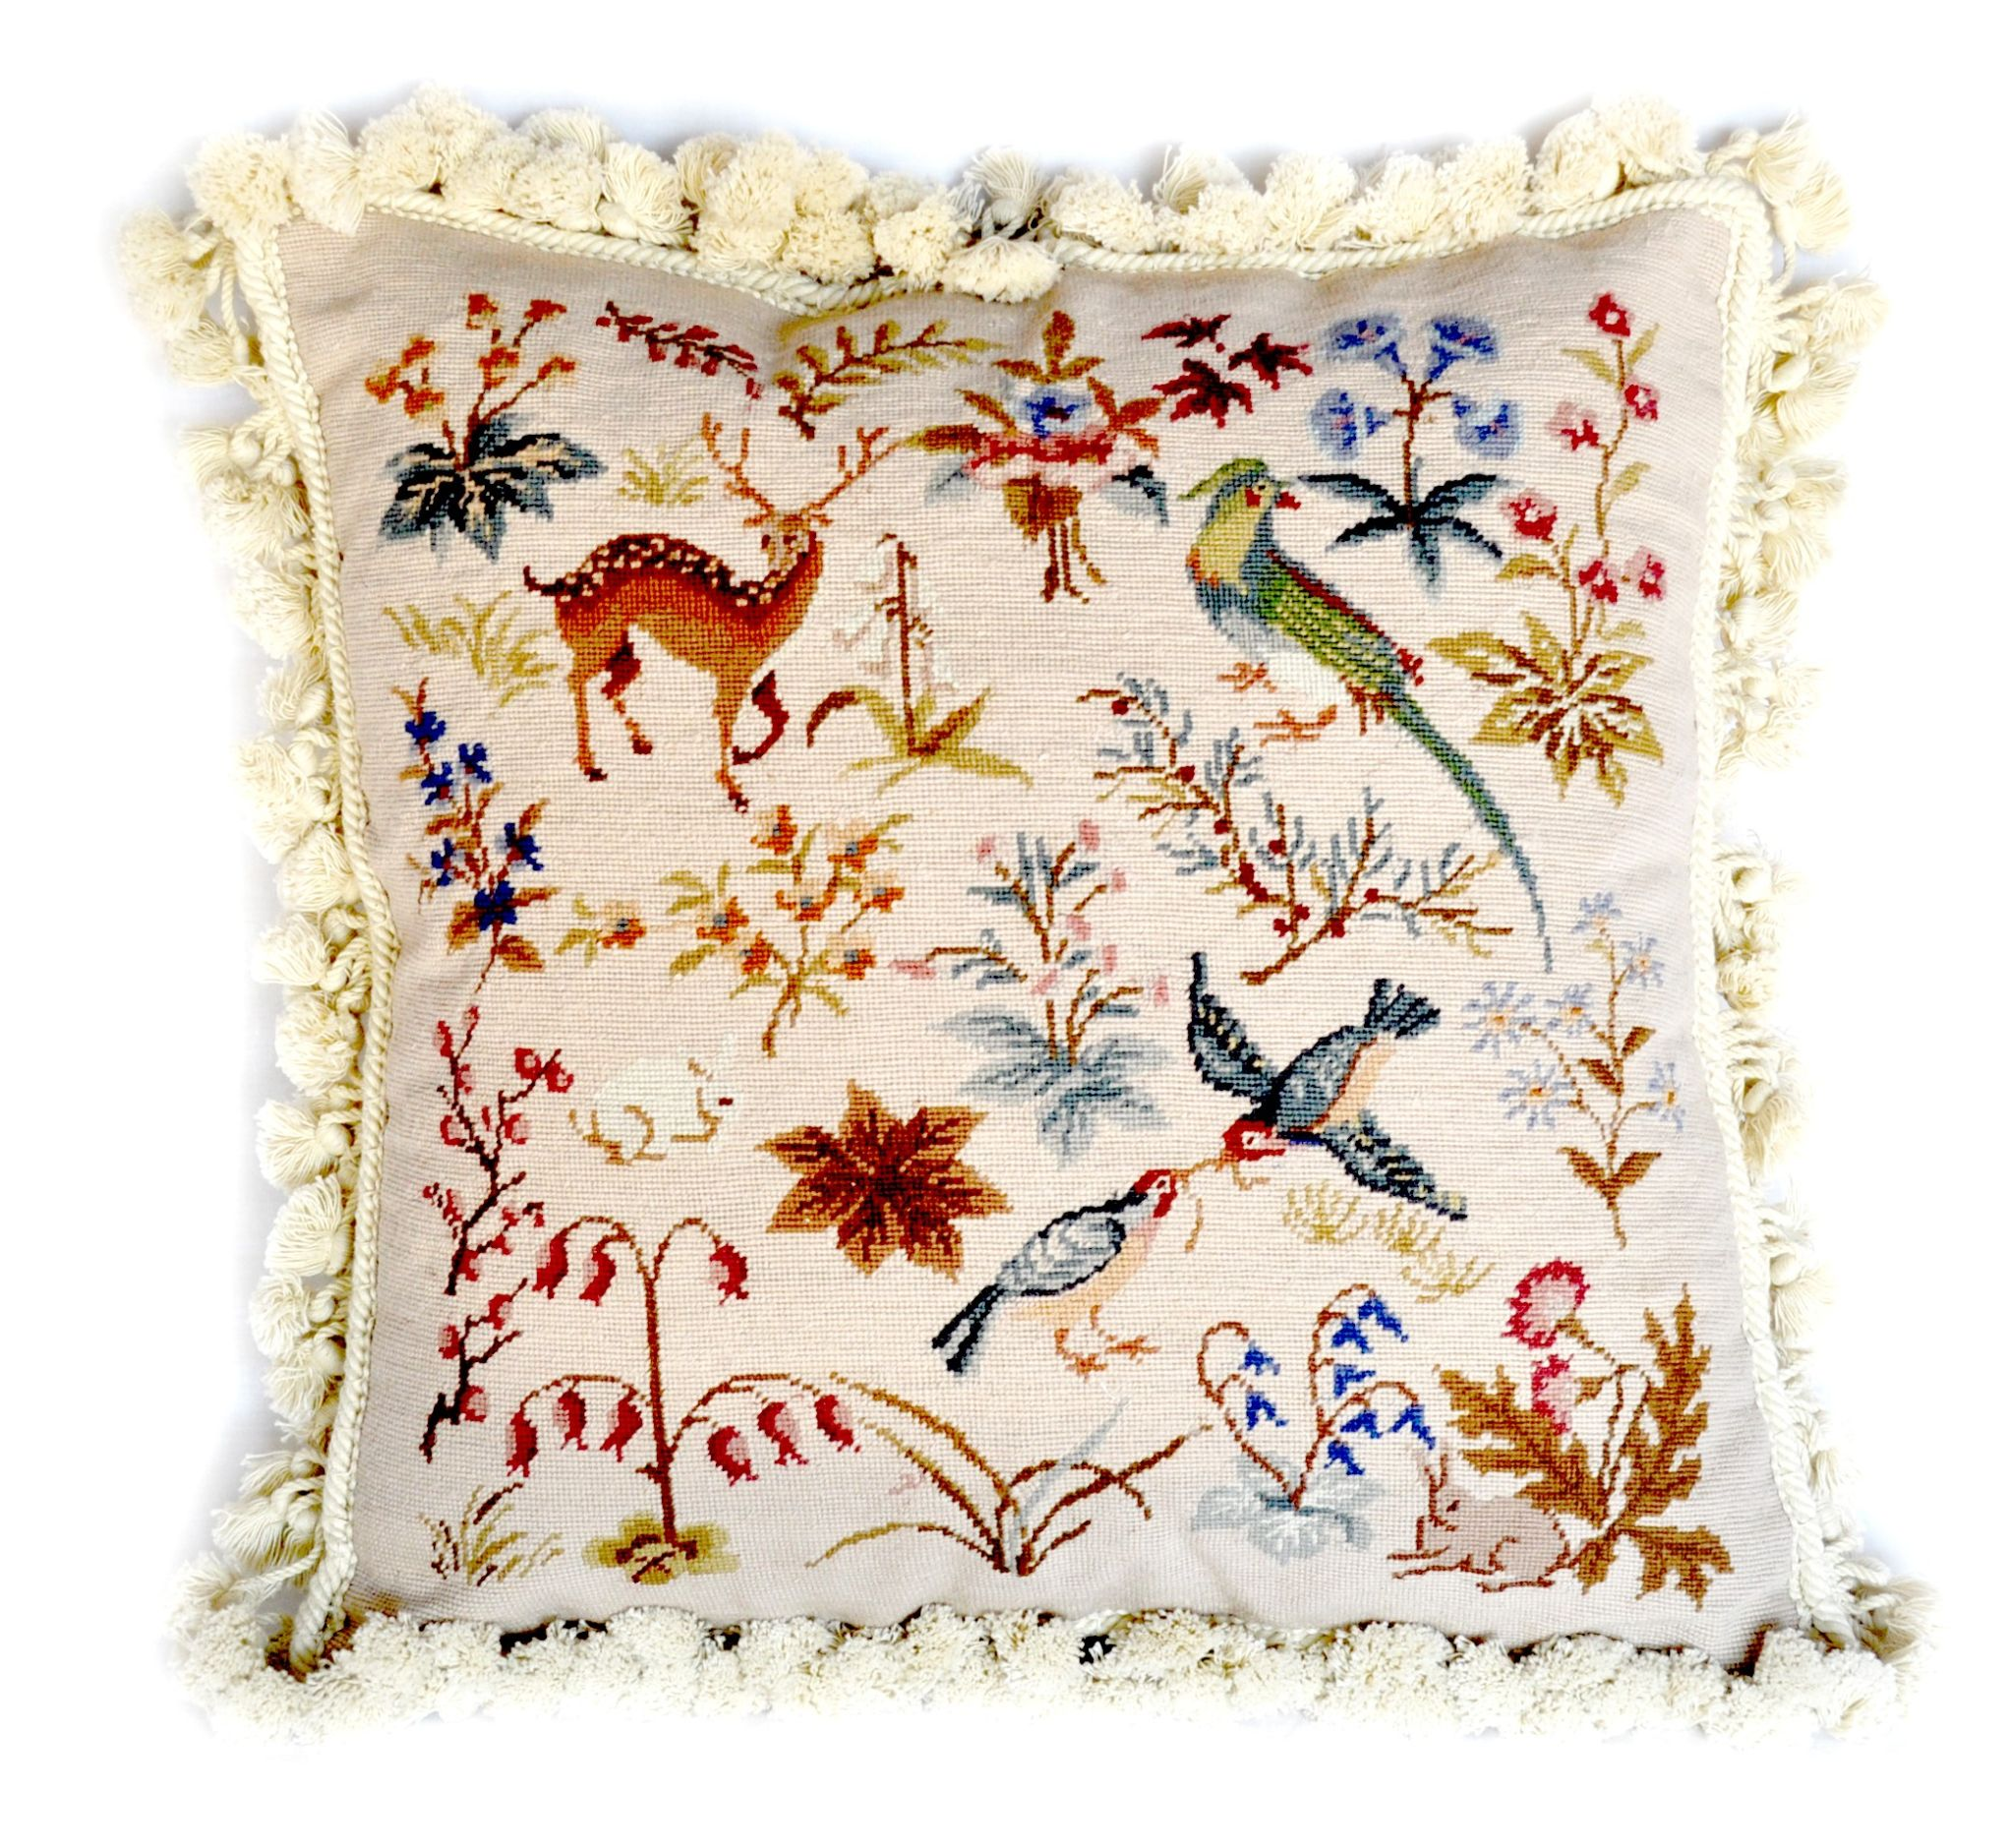 18×18 Bird Parrot Deer Bunny Wool Needlepoint Petitpoint Cushion Cover Pillow Case 12980981